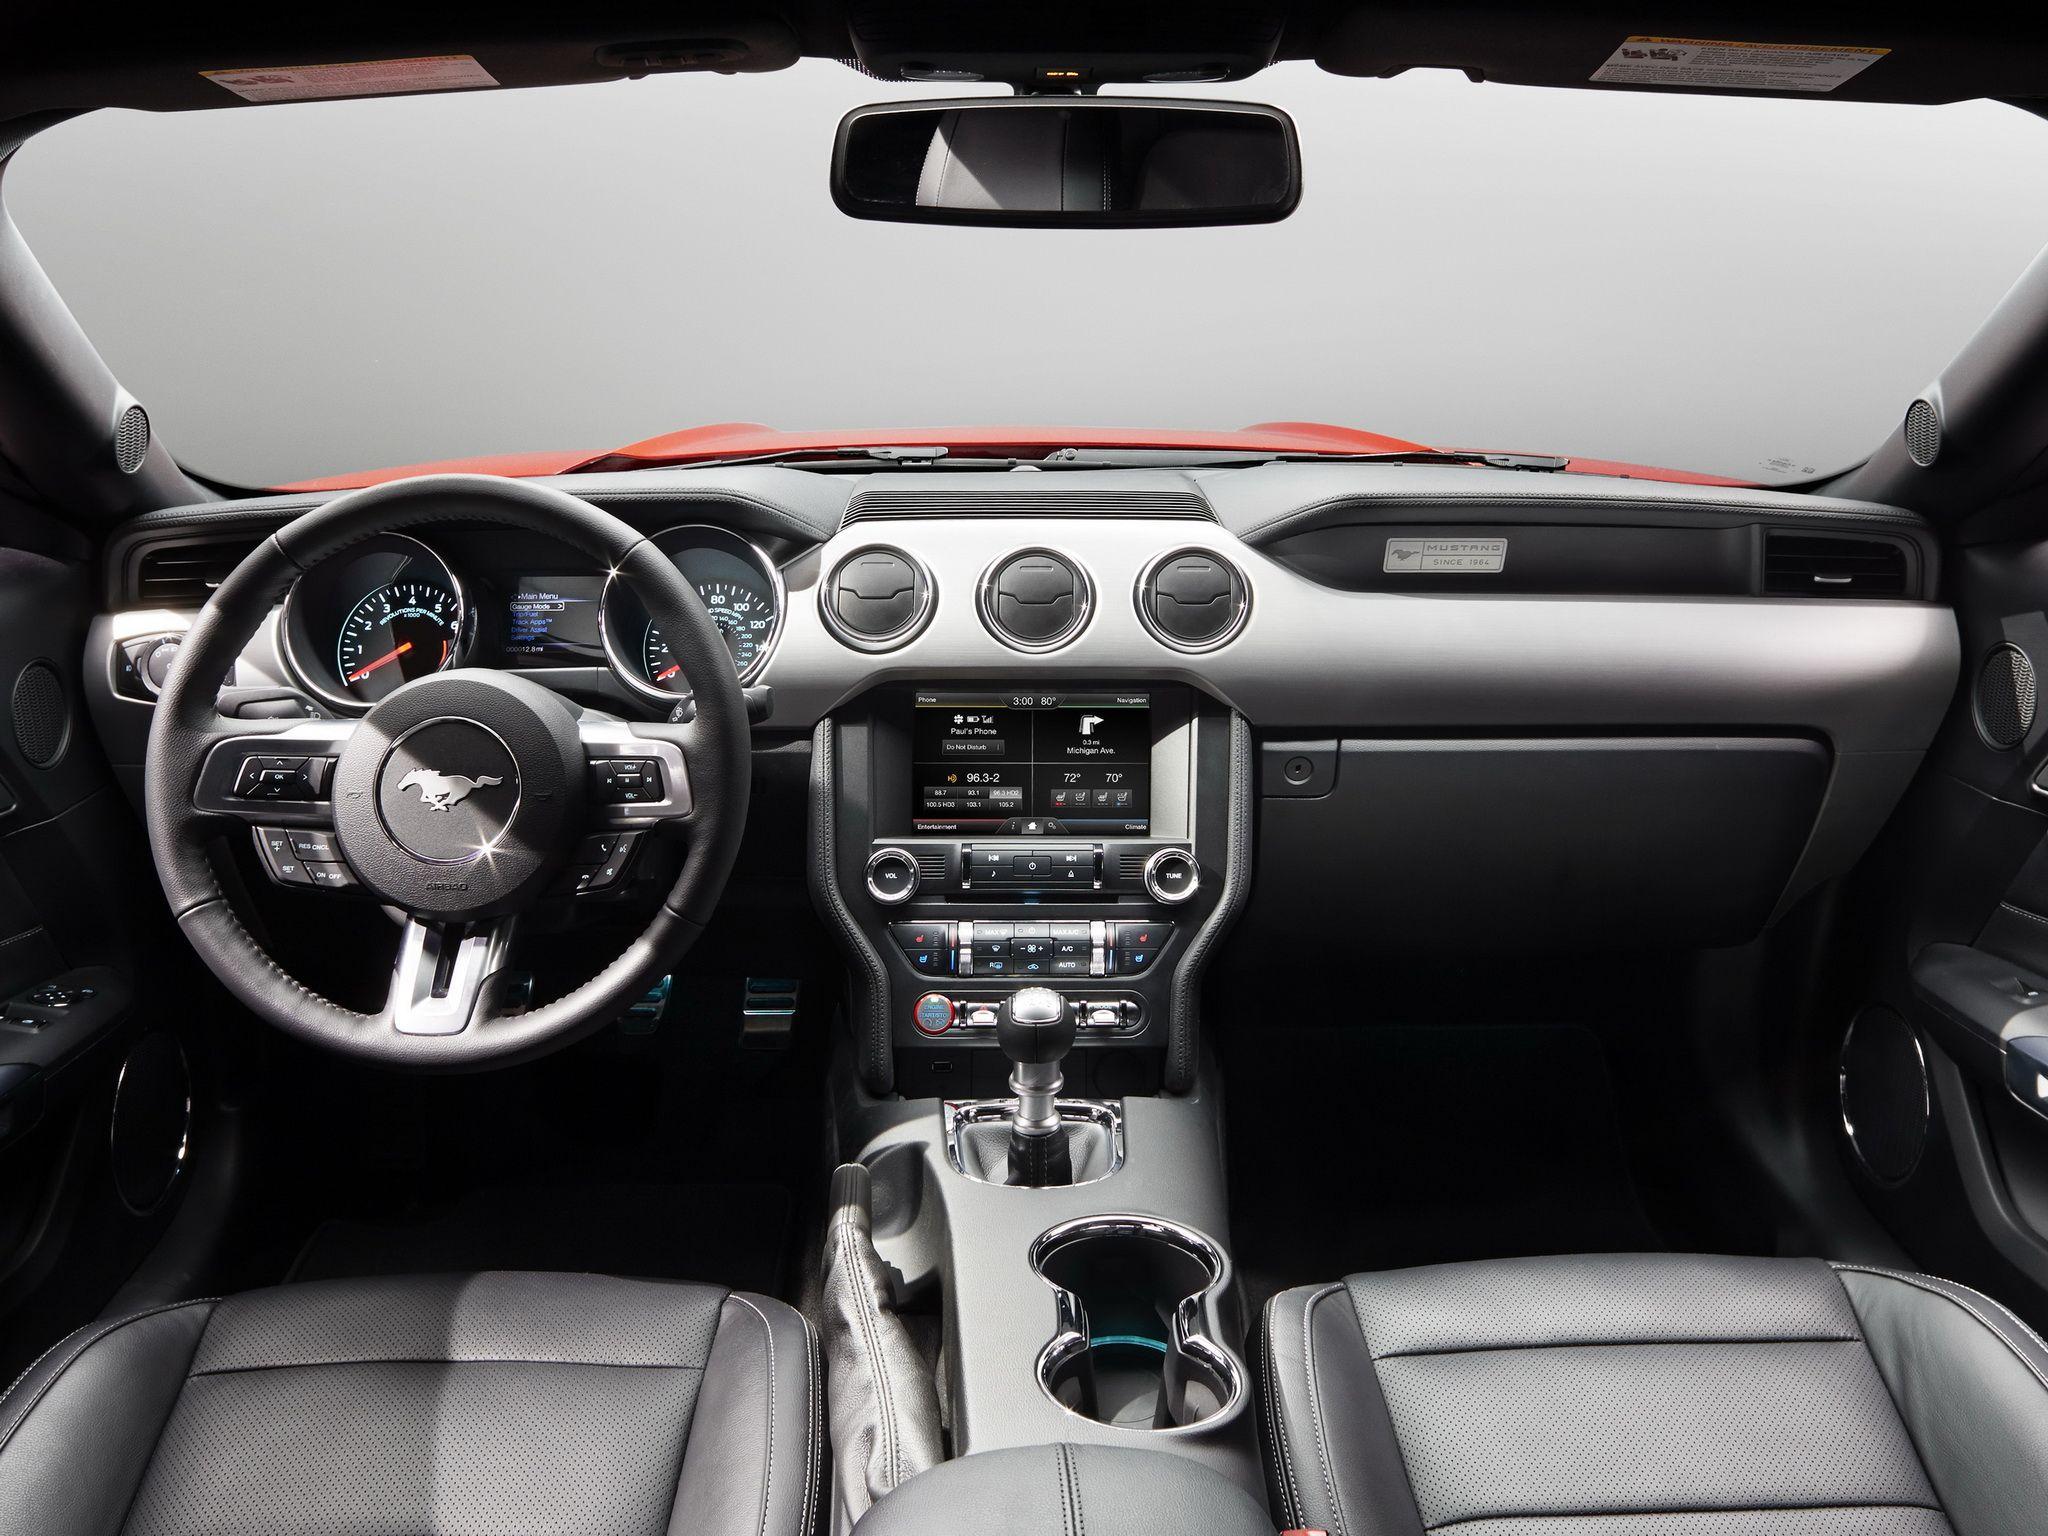 2014 Mustang Interior   Saferbrowser Yahoo Image Search Results